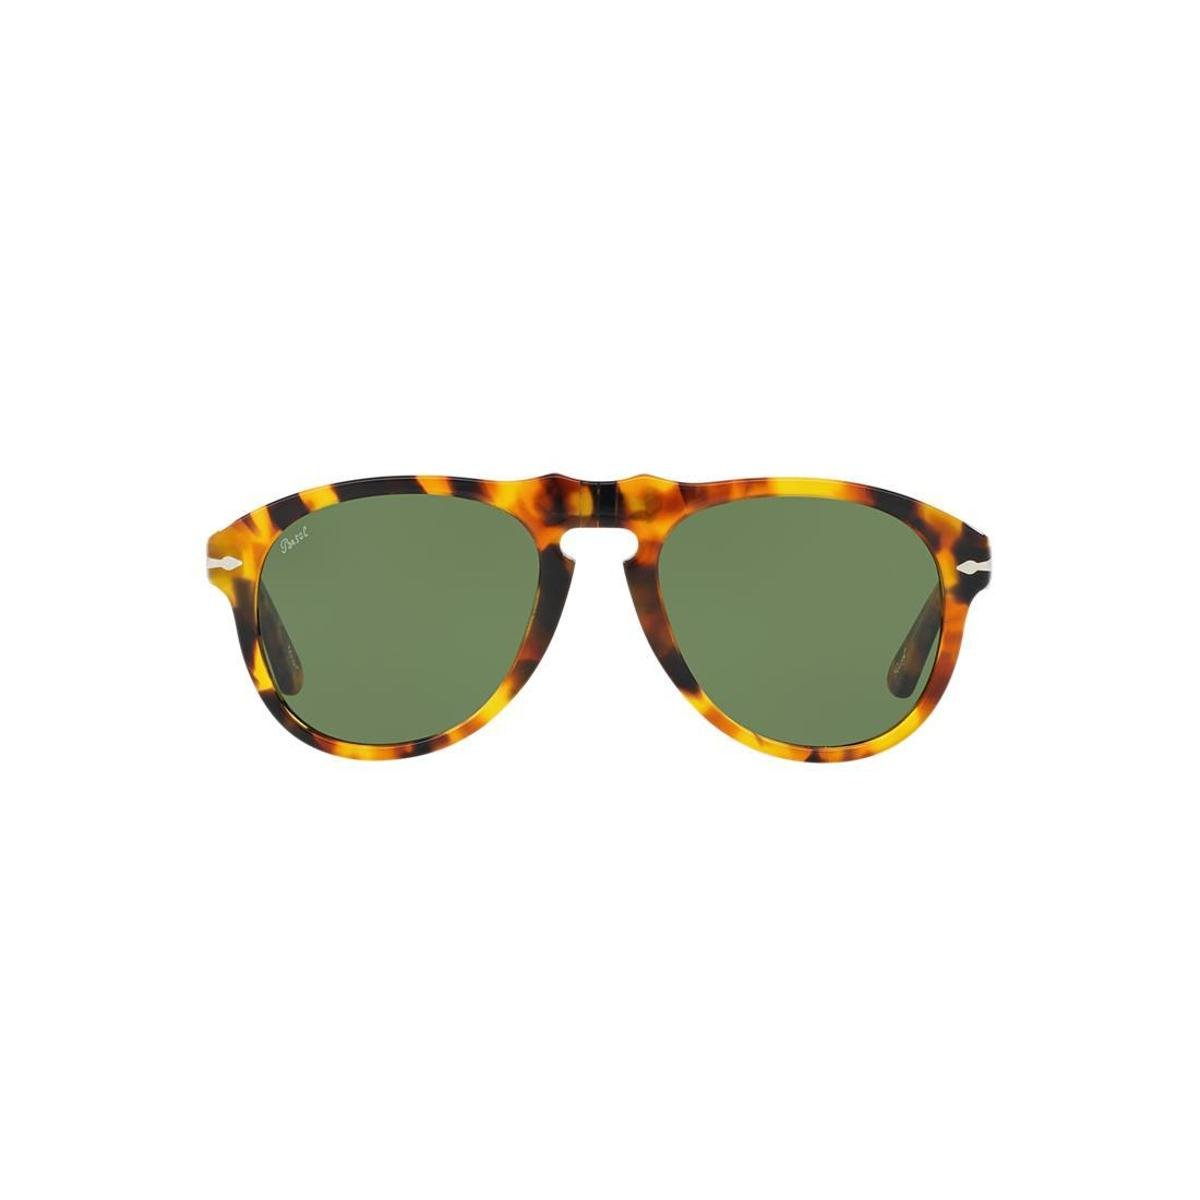 c20016a0615e9 Óculos de Sol Persol Piloto PO0649 Masculino - Compre Agora